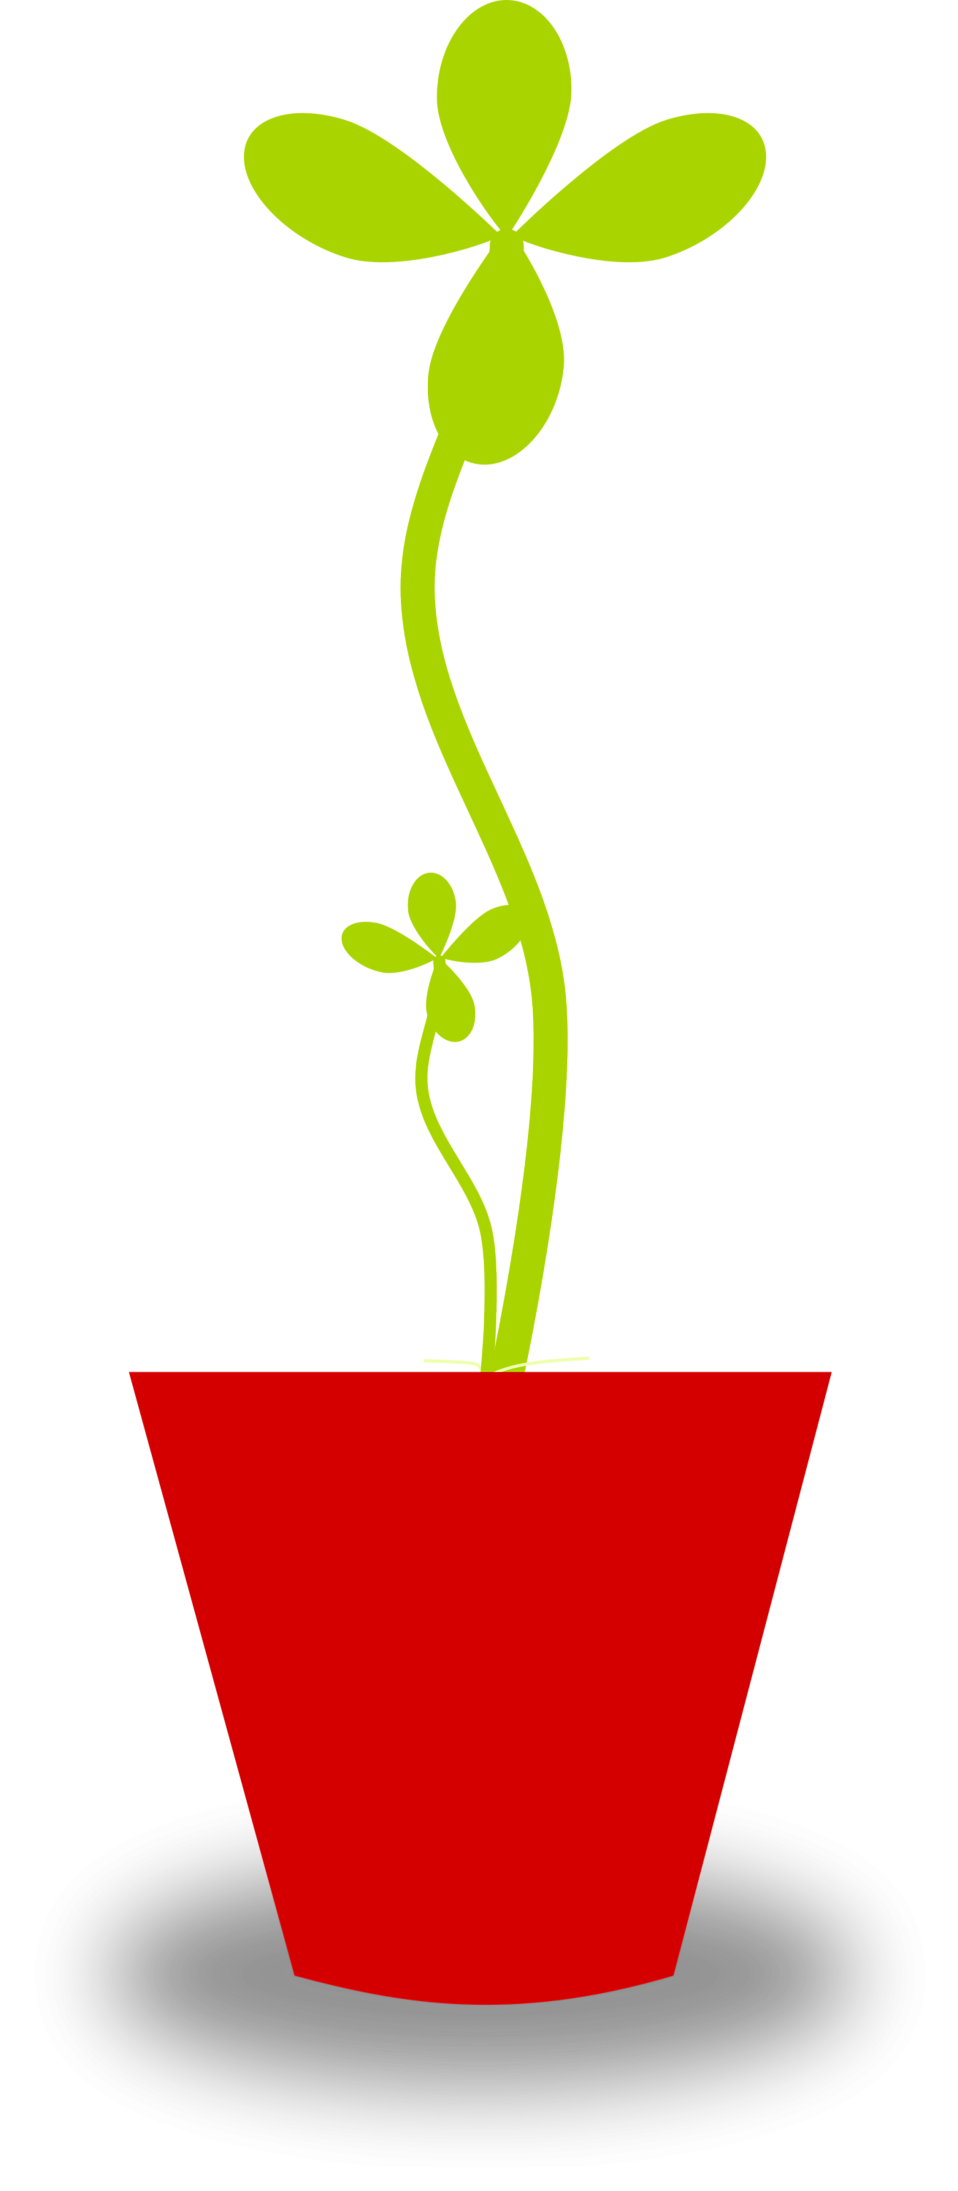 Plants clipart potted plant. Free stock photo illustration